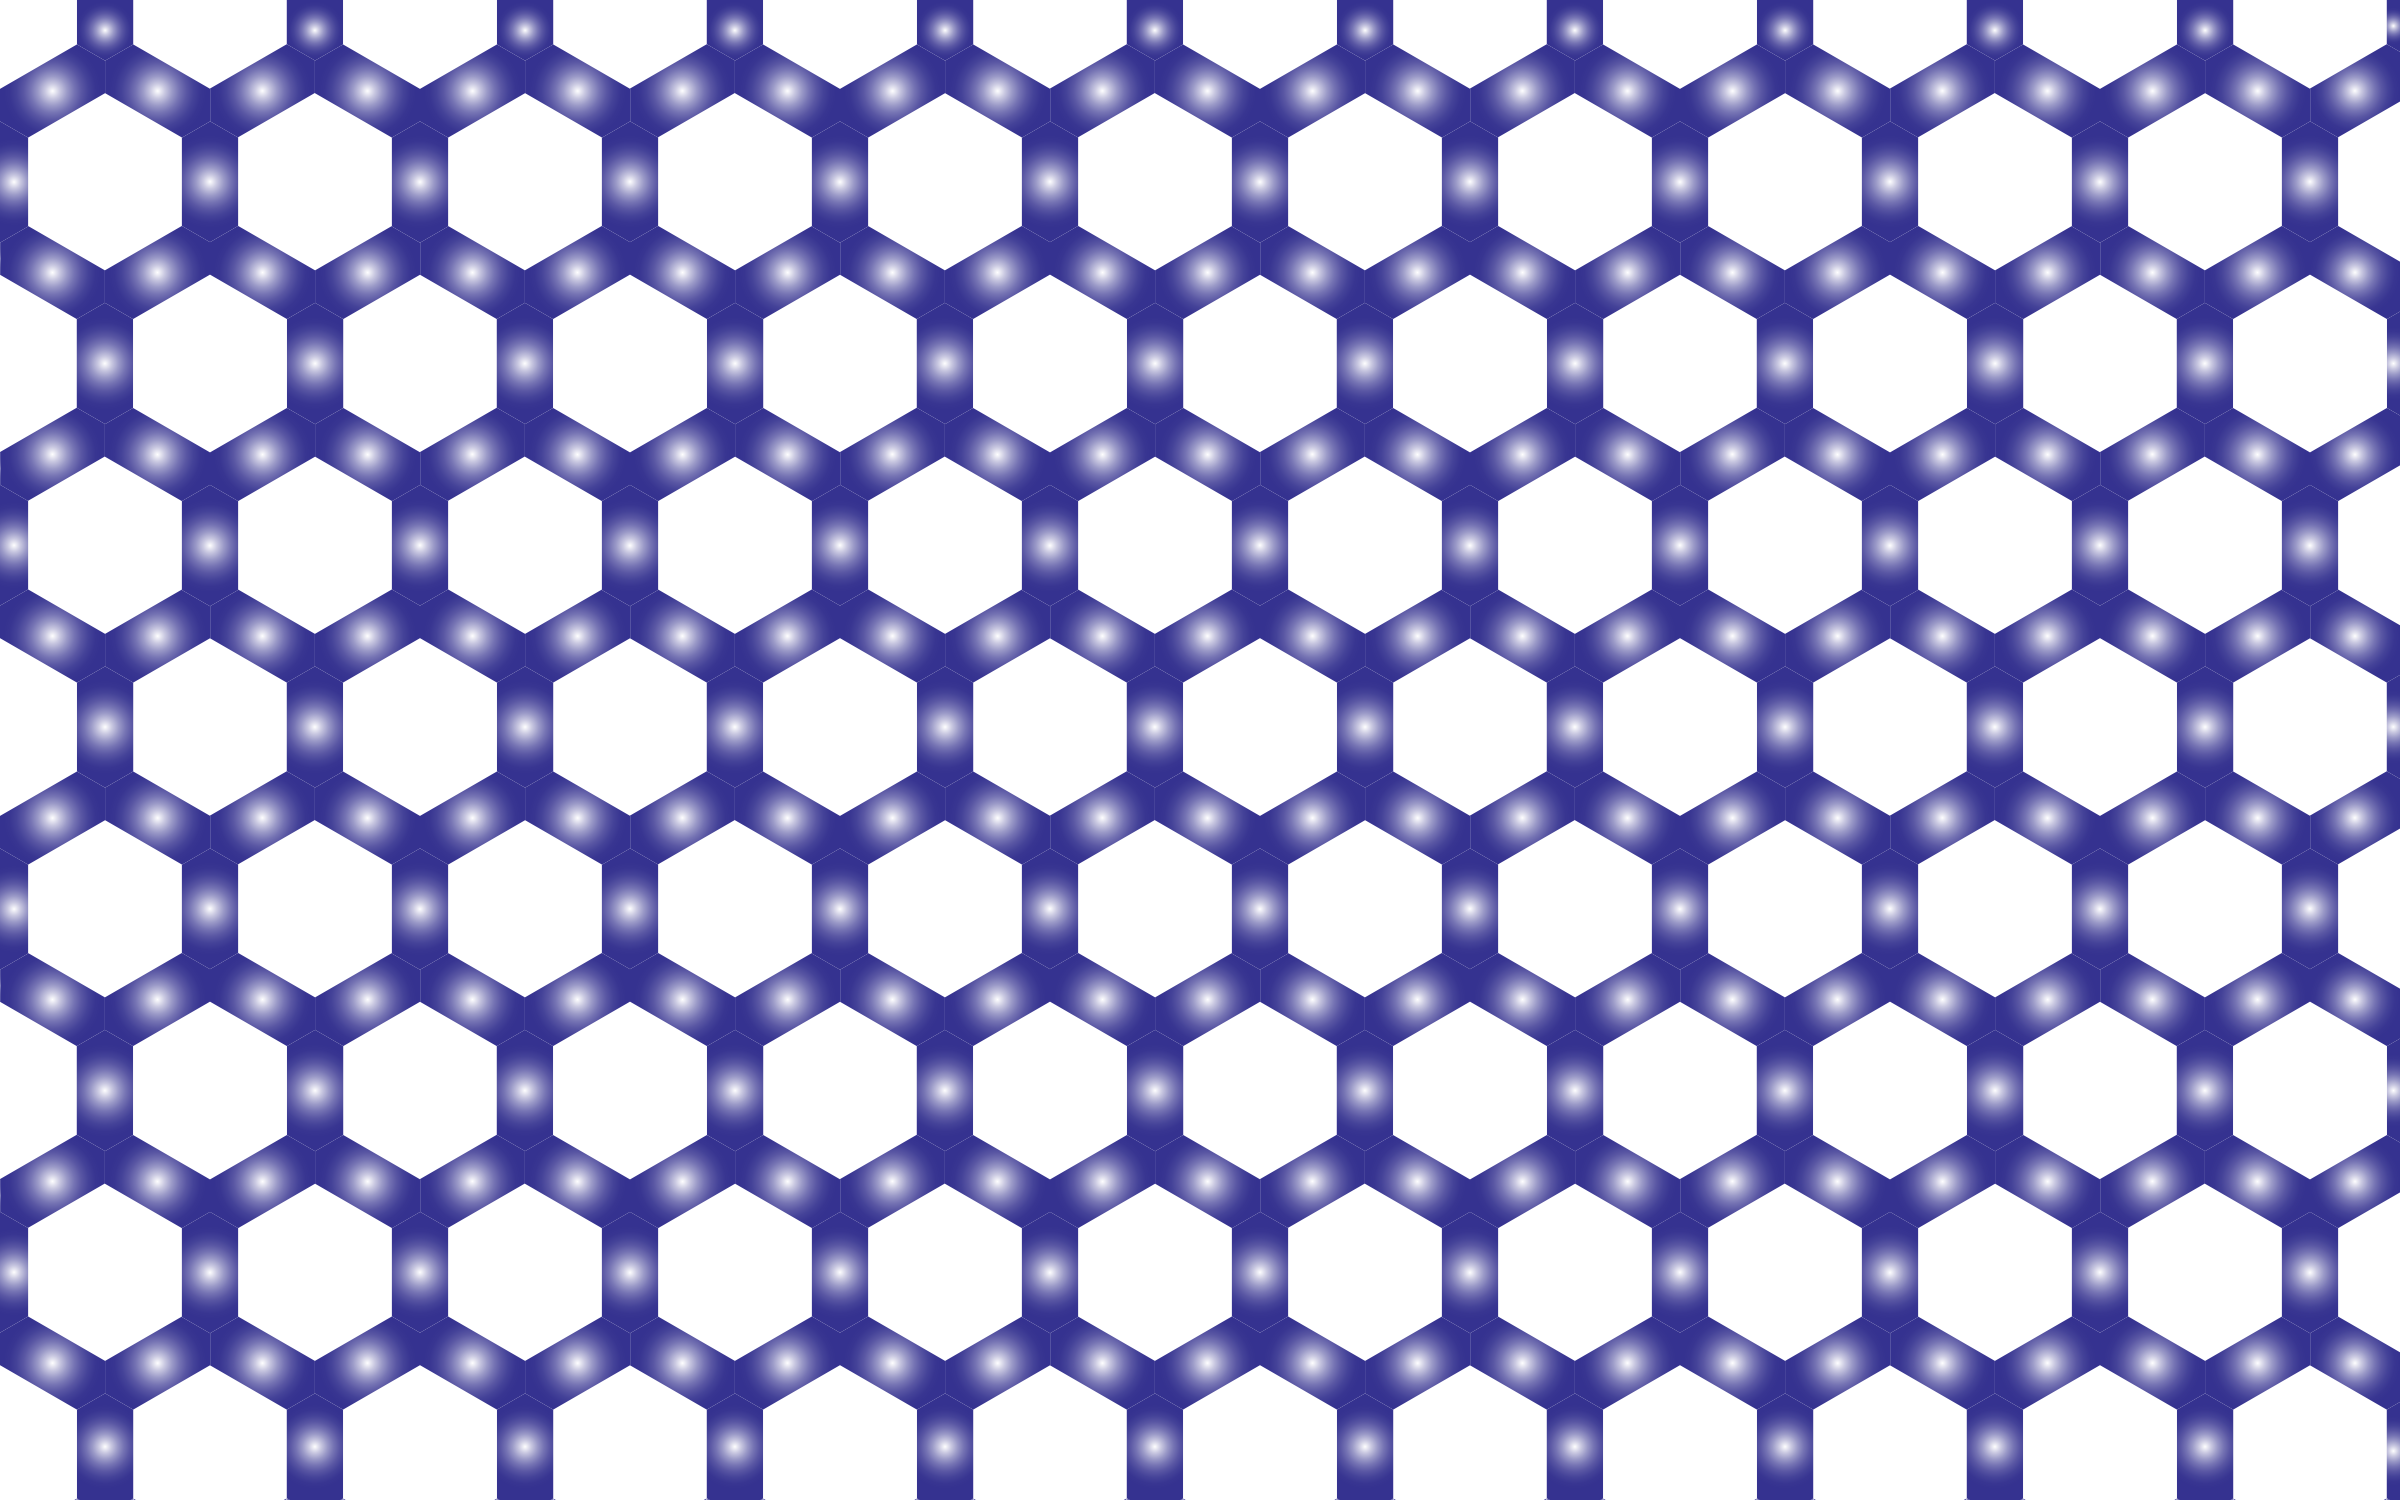 Prismatic Hexagonal Geometric Pattern 8 No Background by GDJ